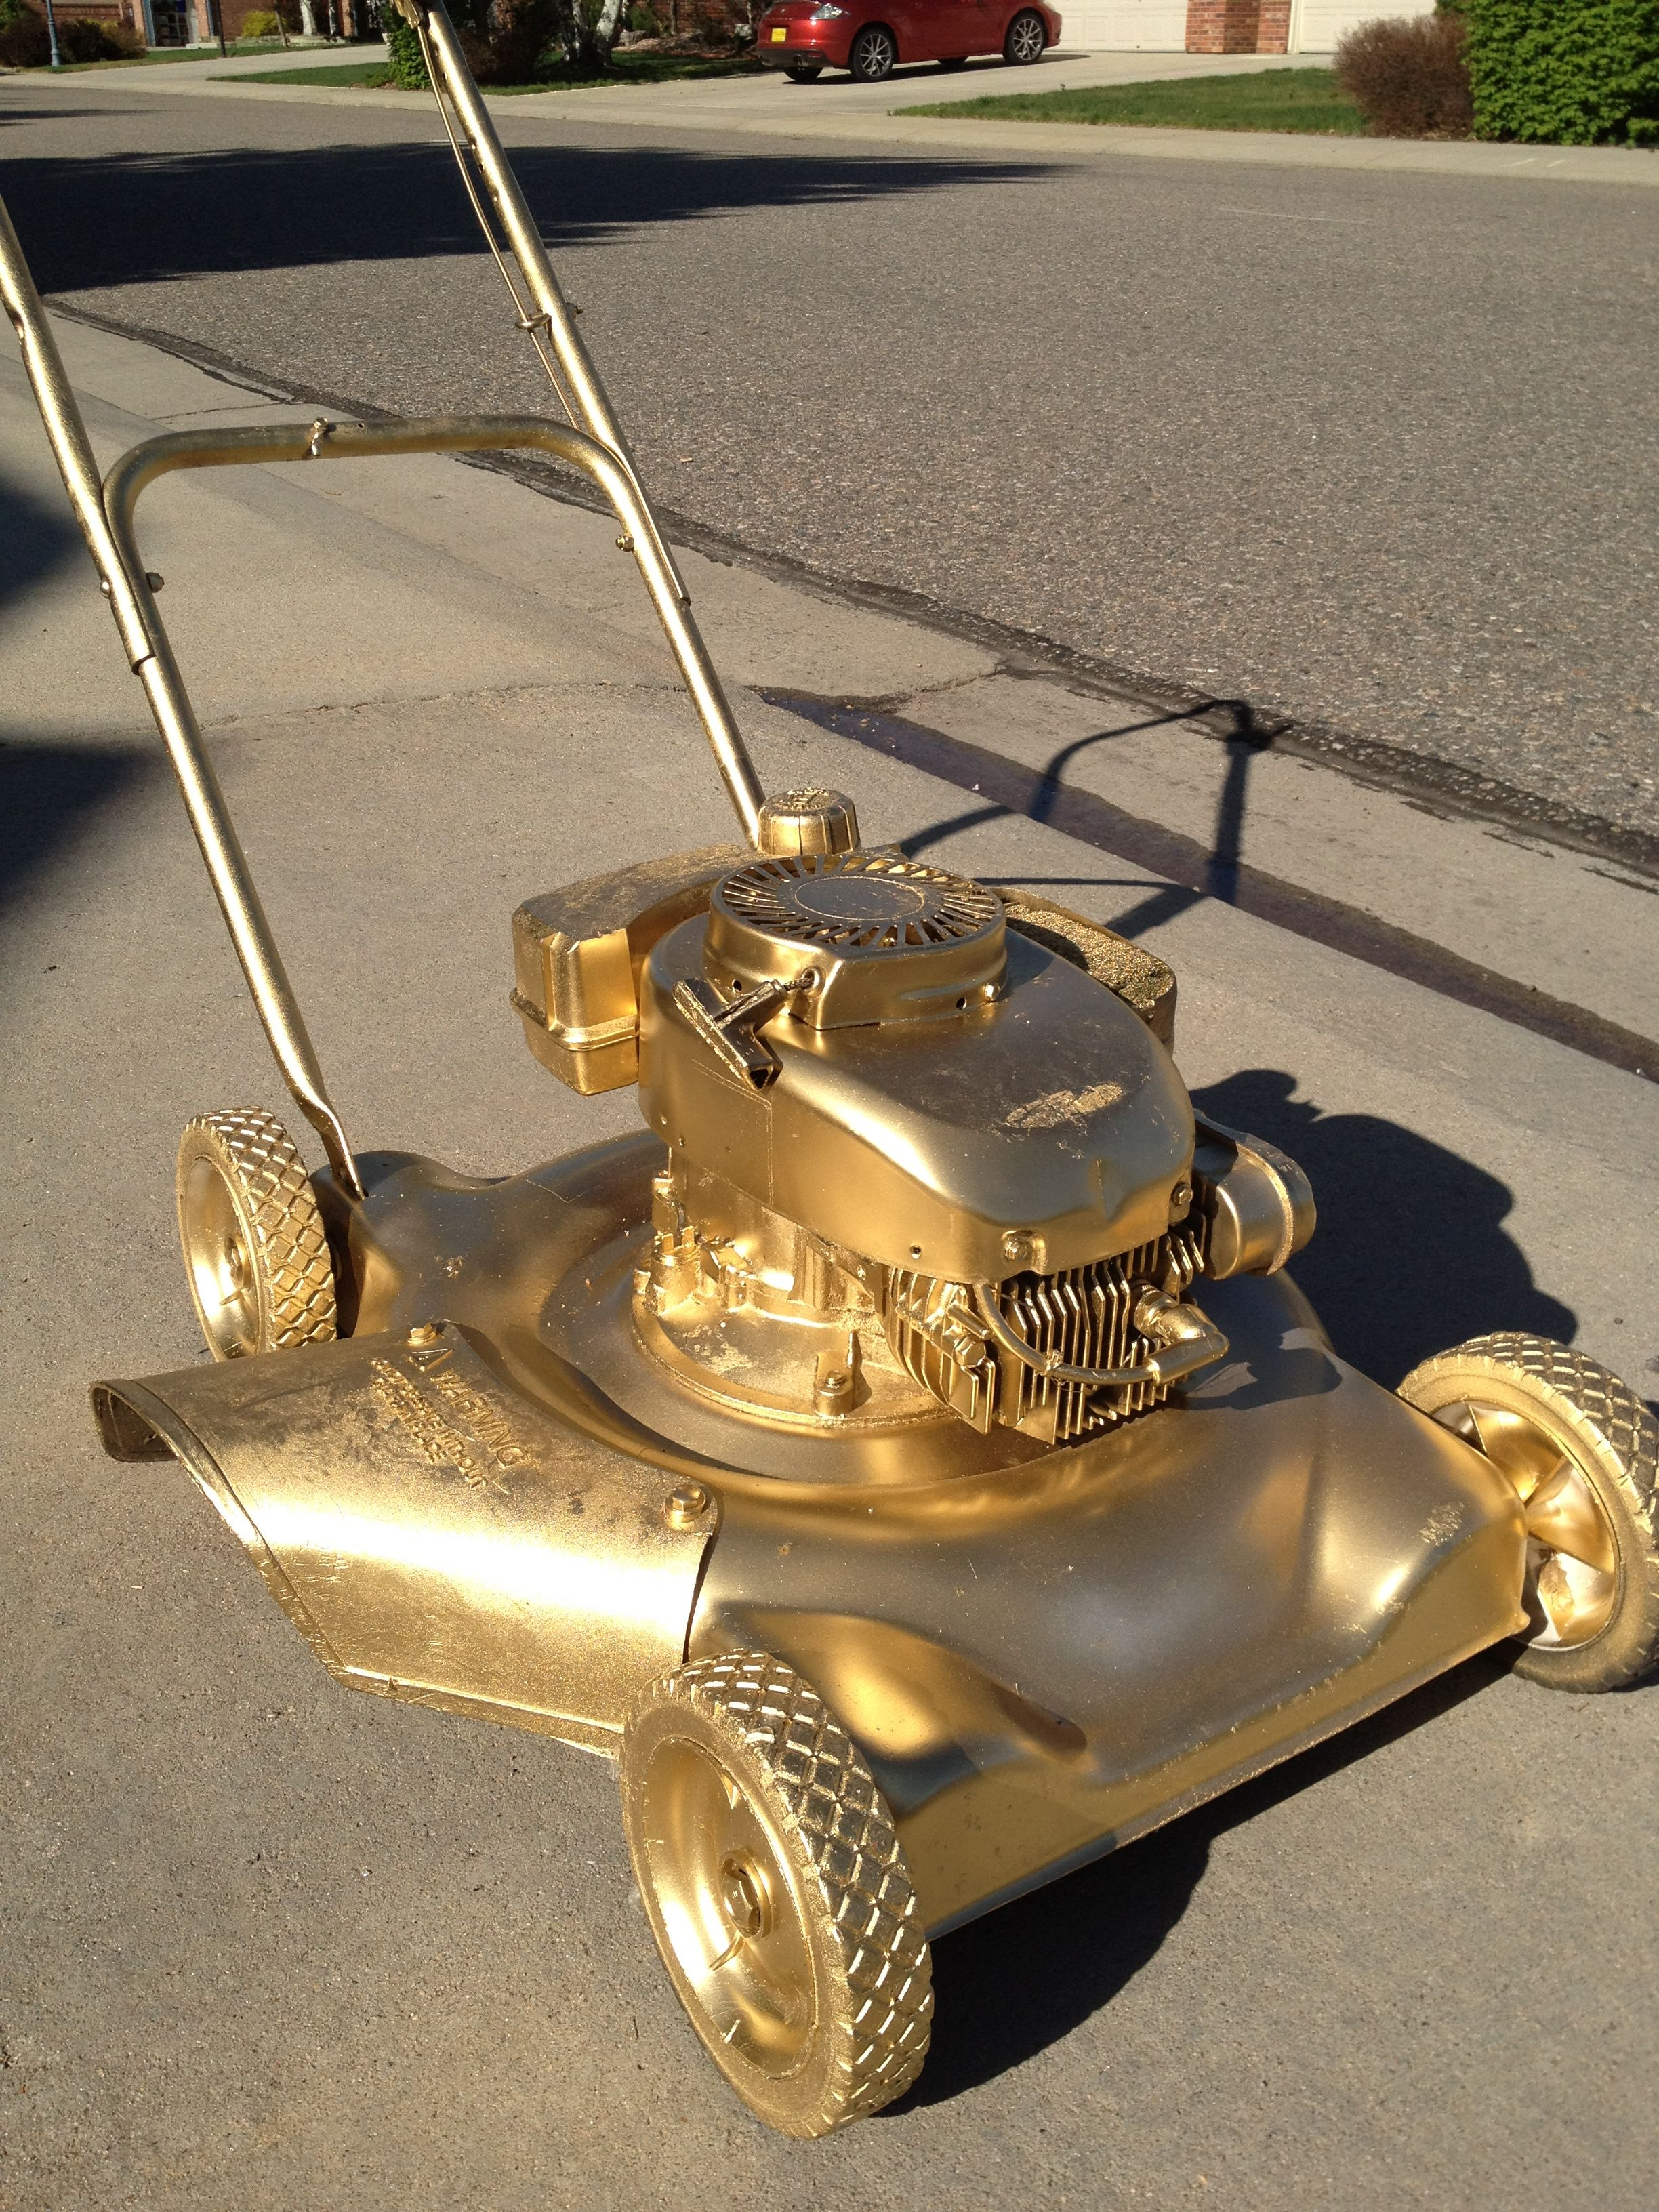 Gold Lawn Mower Share Photos Of Your Projects With Us